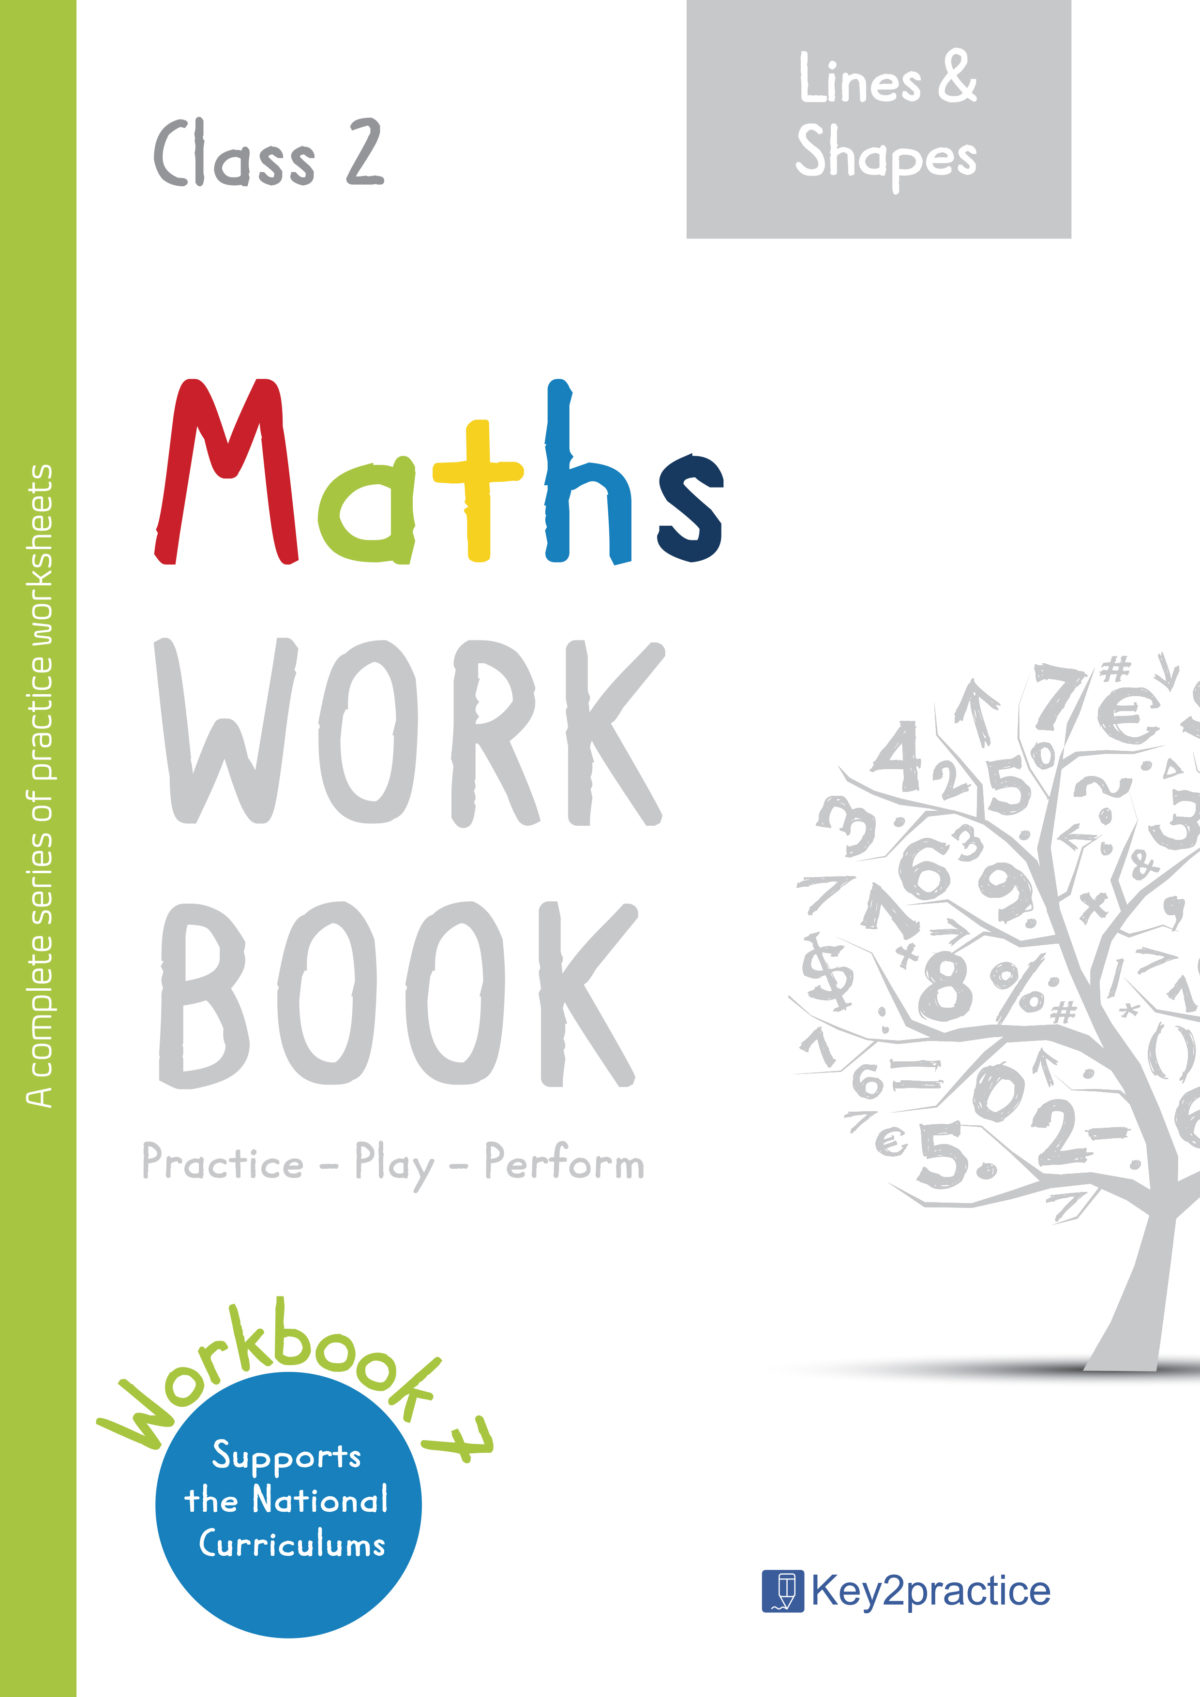 Maths Worksheets Grade 2 Workbook On Lines And Shapes